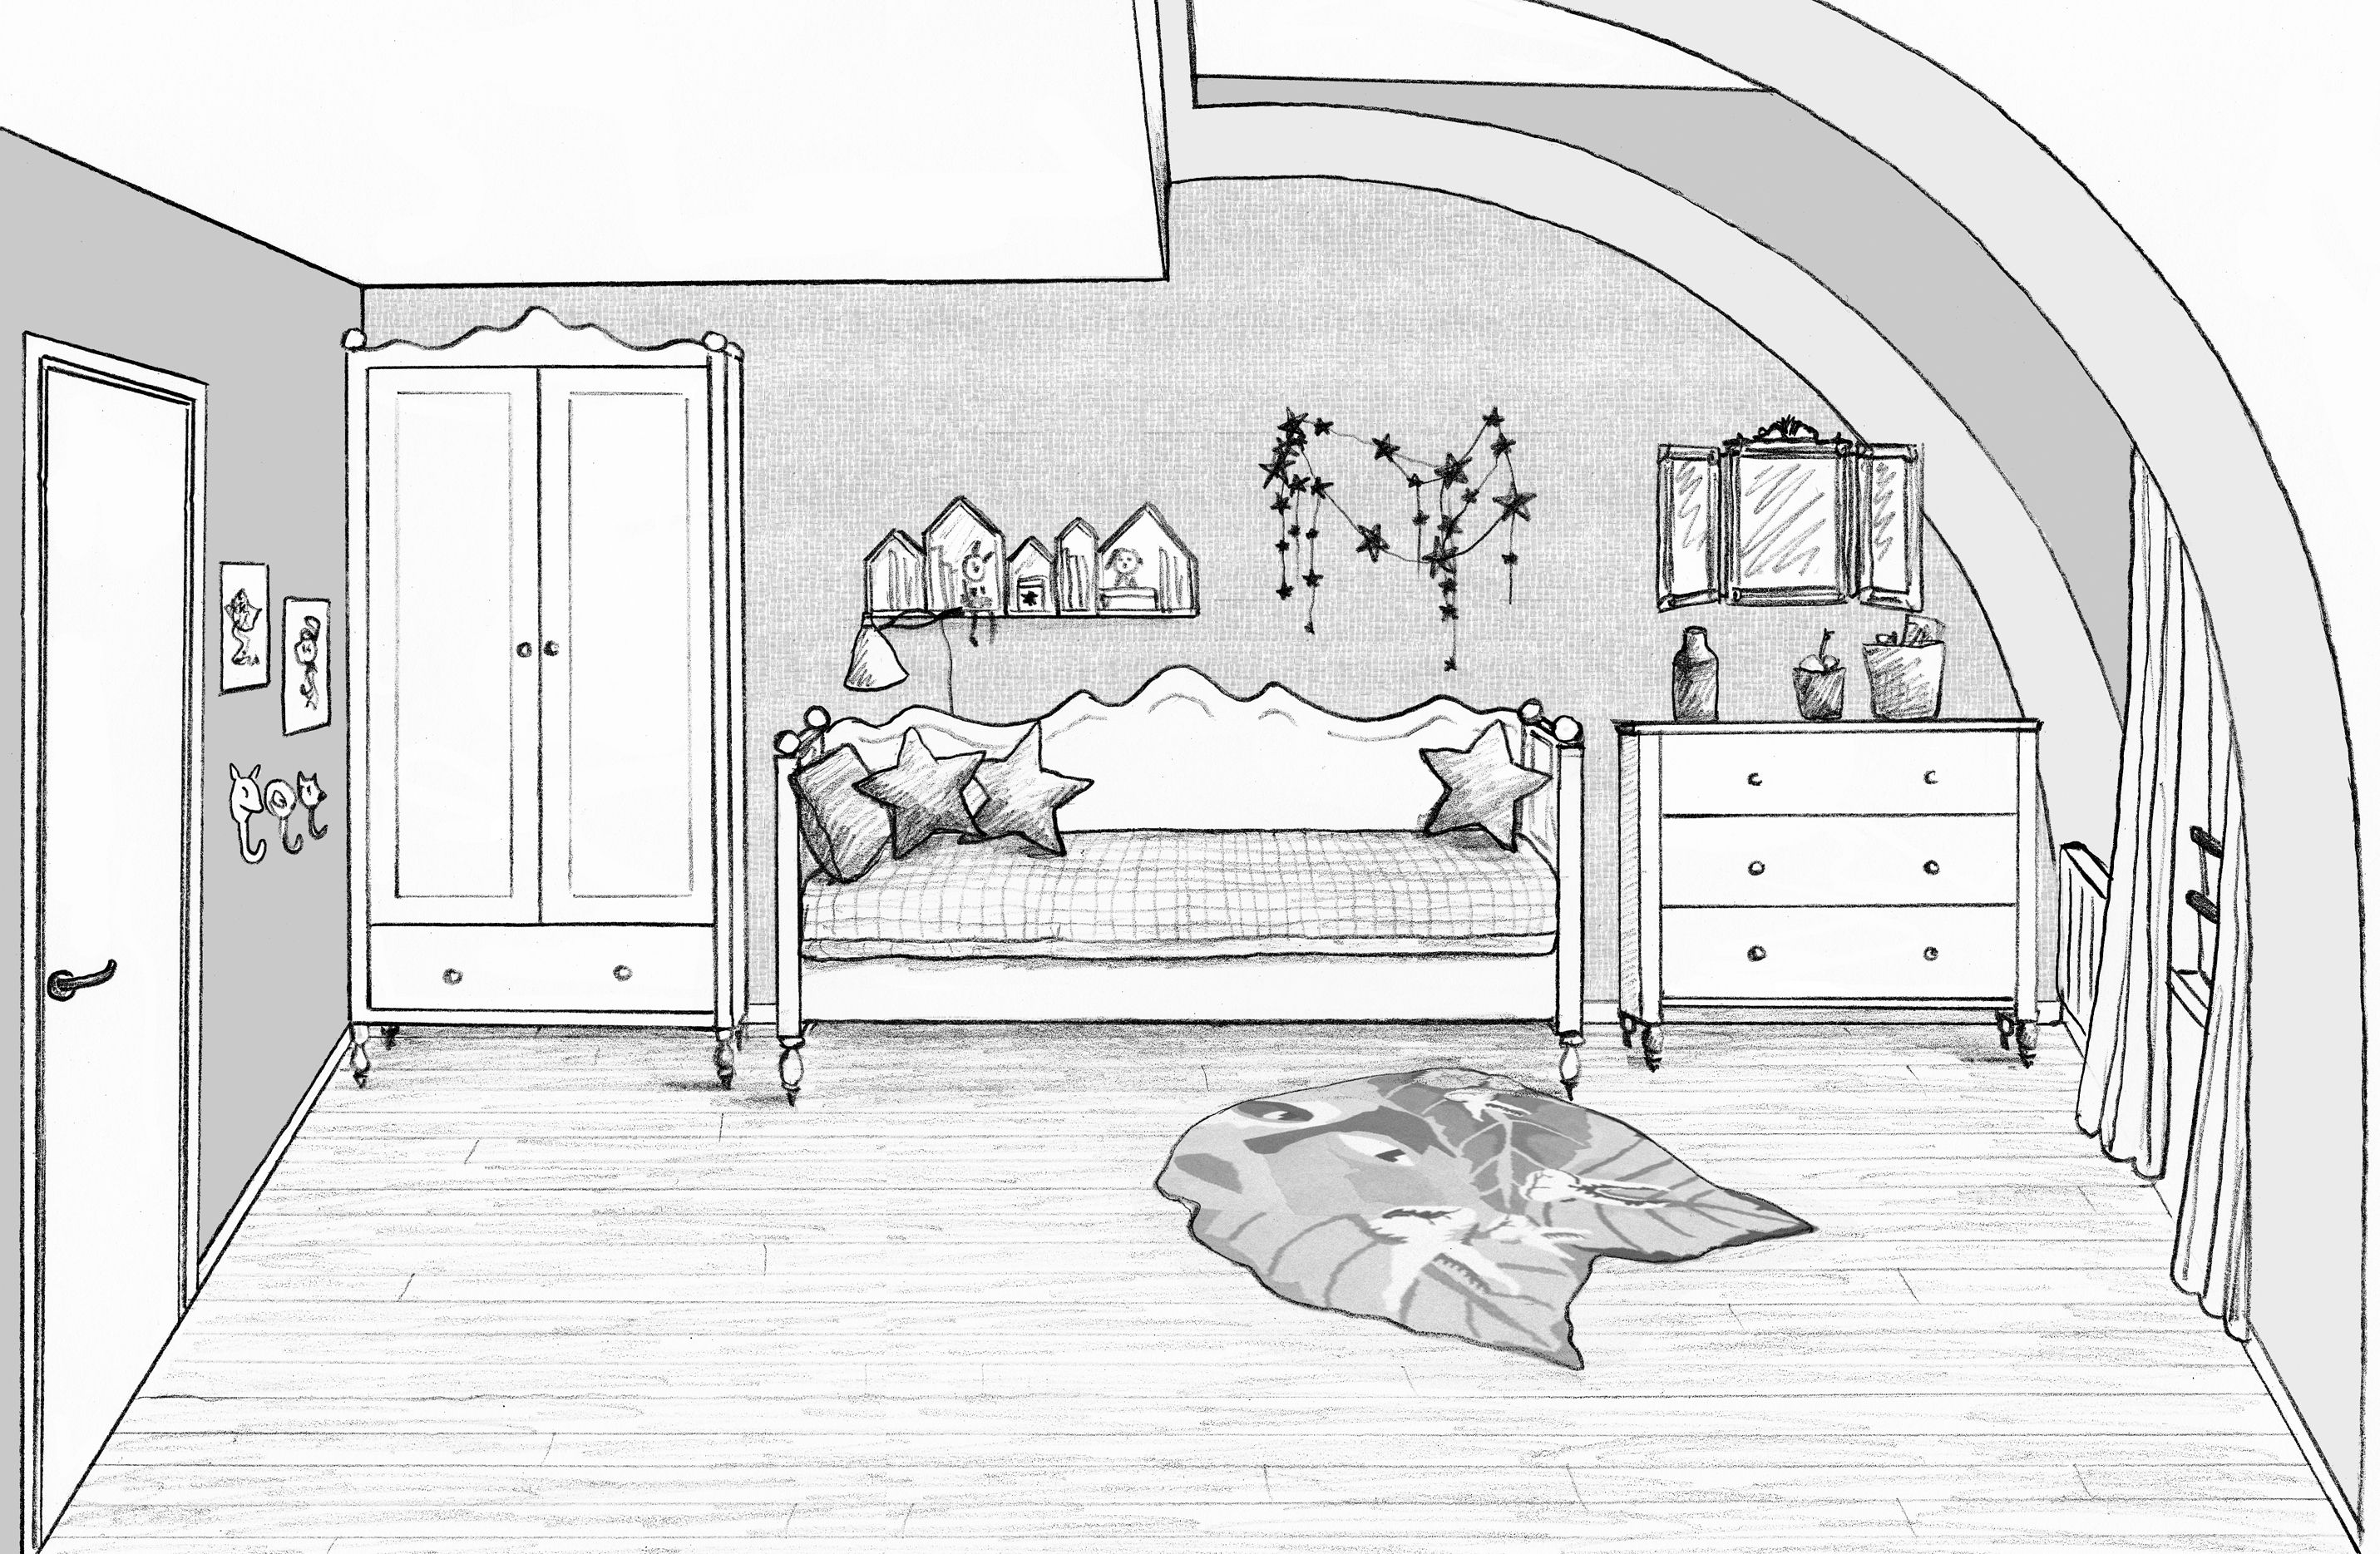 Chambre File La Reine Des Neige House Colouring Pages Interior Sketch Interior Design Drawings